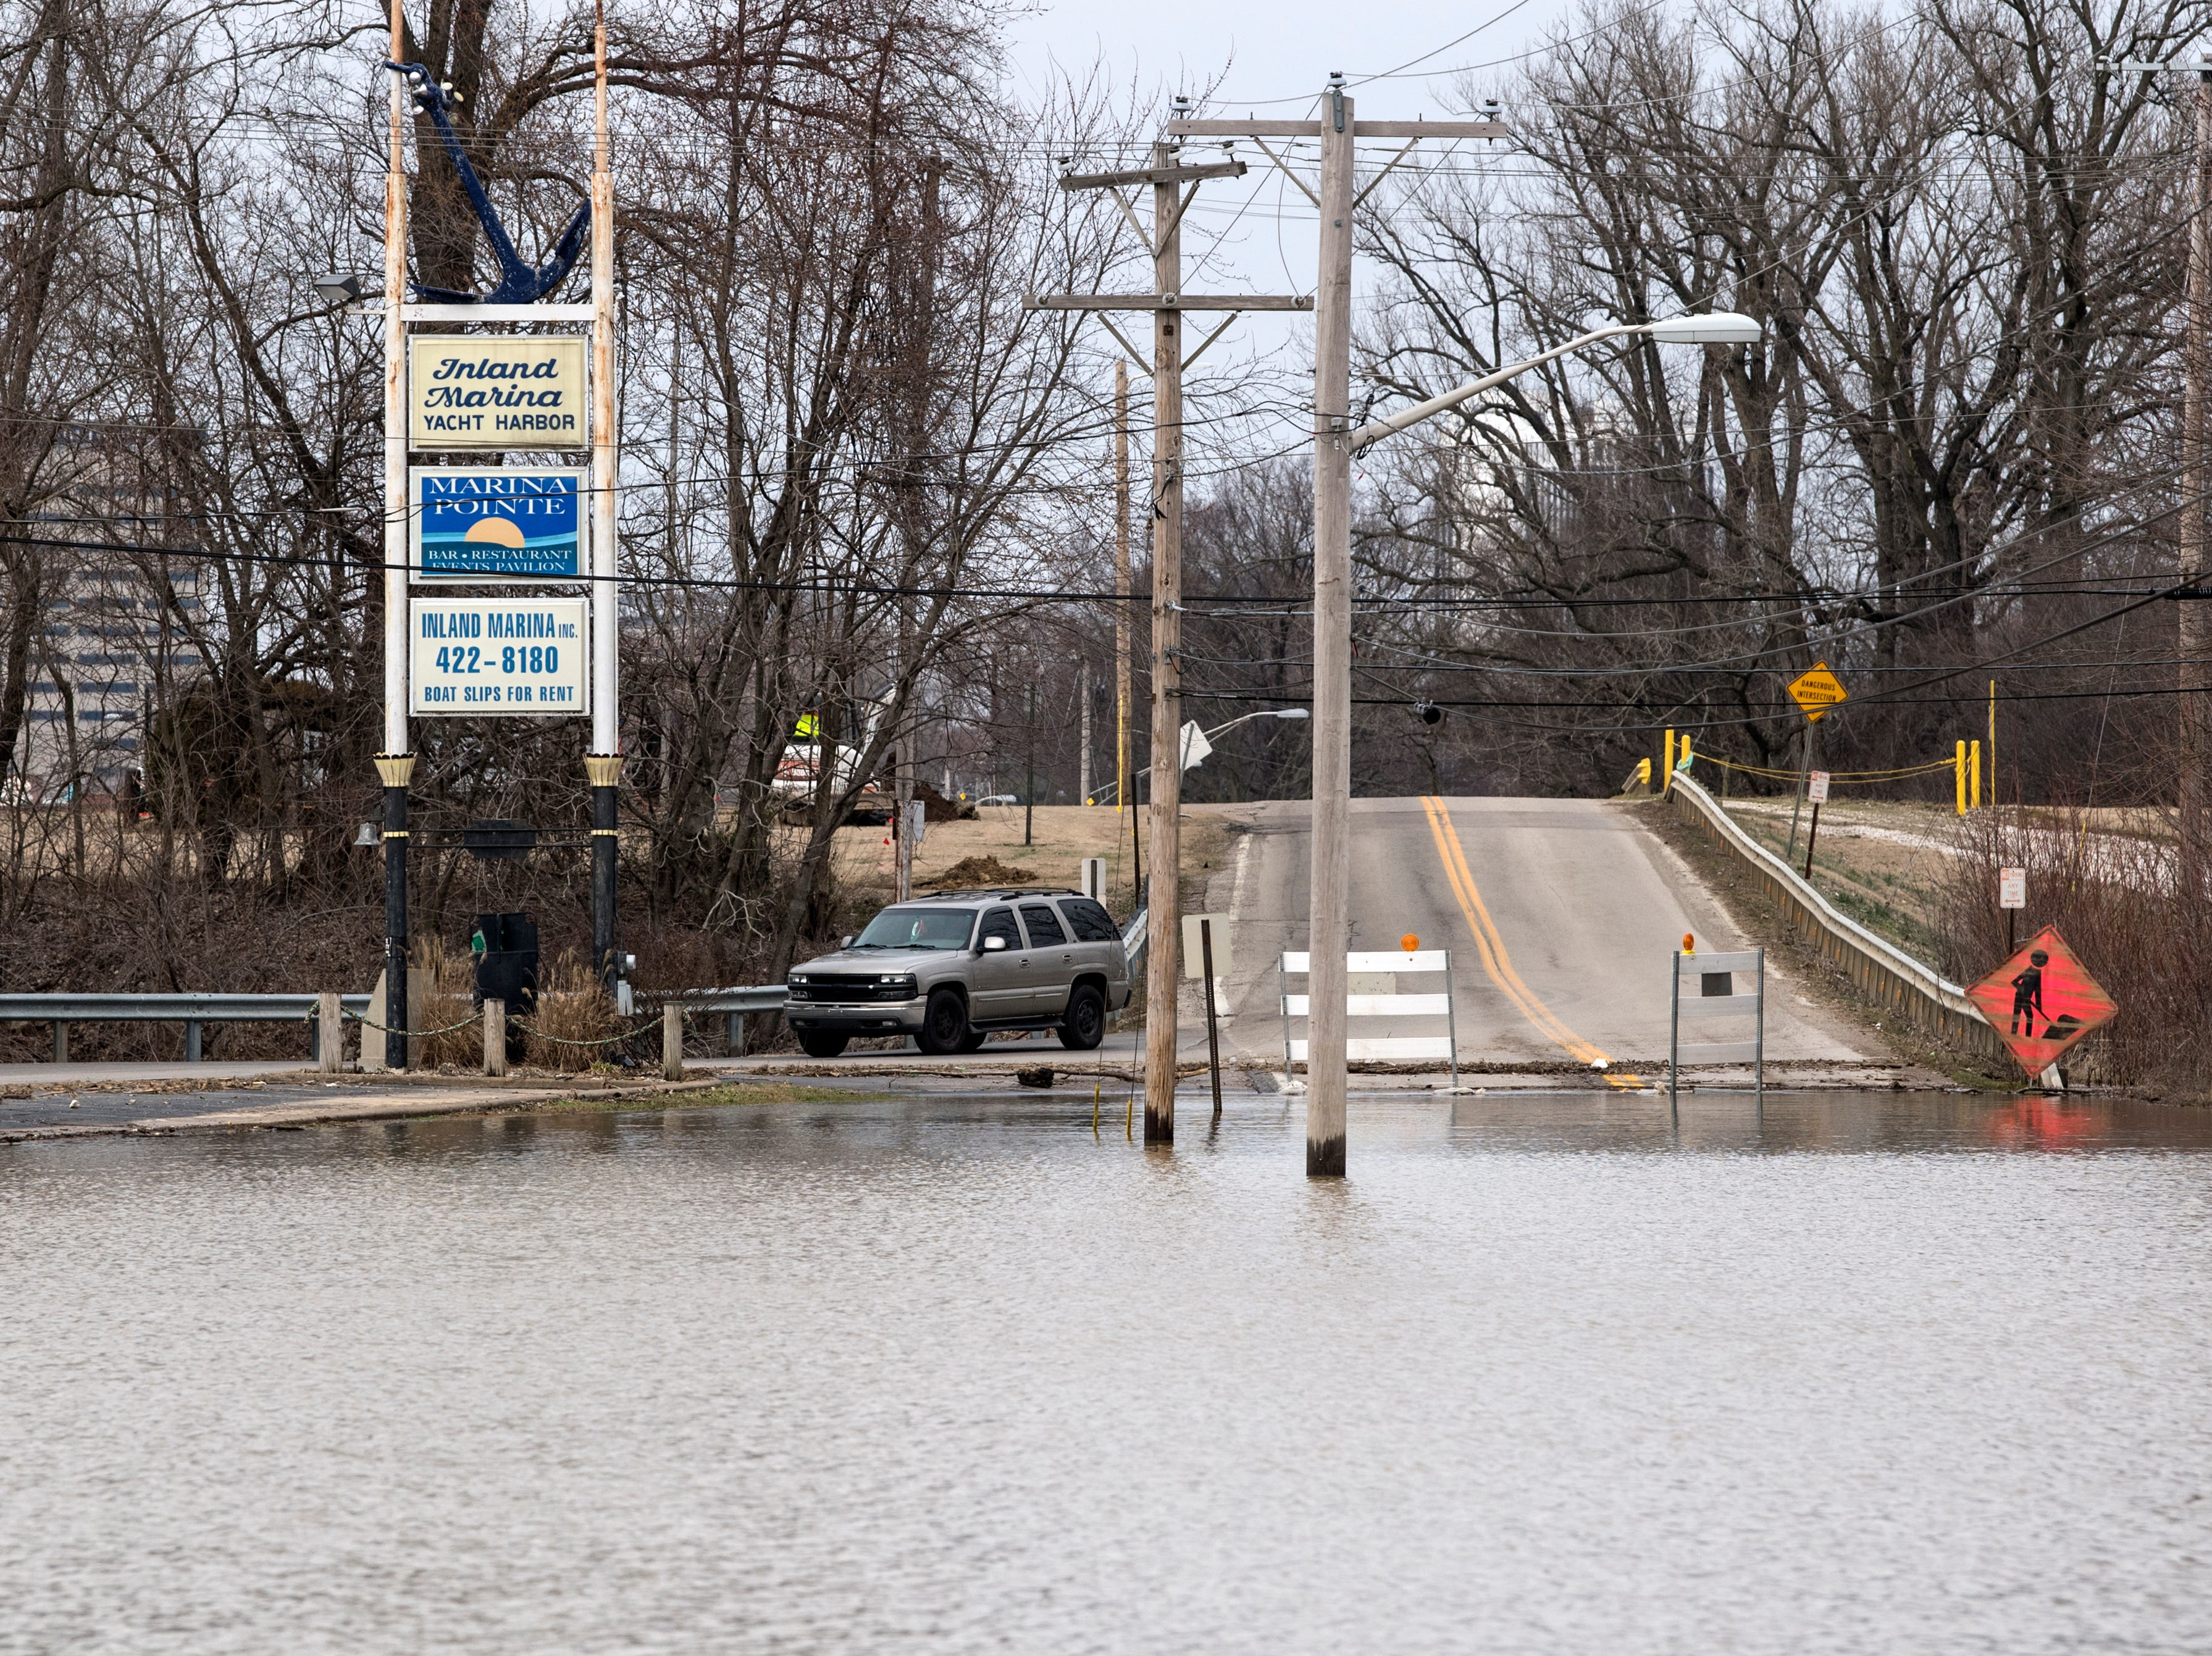 Vehicles traveling to and from Marina Point and Island Marina travel along a side road due to high water blocking a large section of Waterworks Road near the intersection of LST Drive in Evansville, Ind., Tuesday, Feb. 19, 2019.